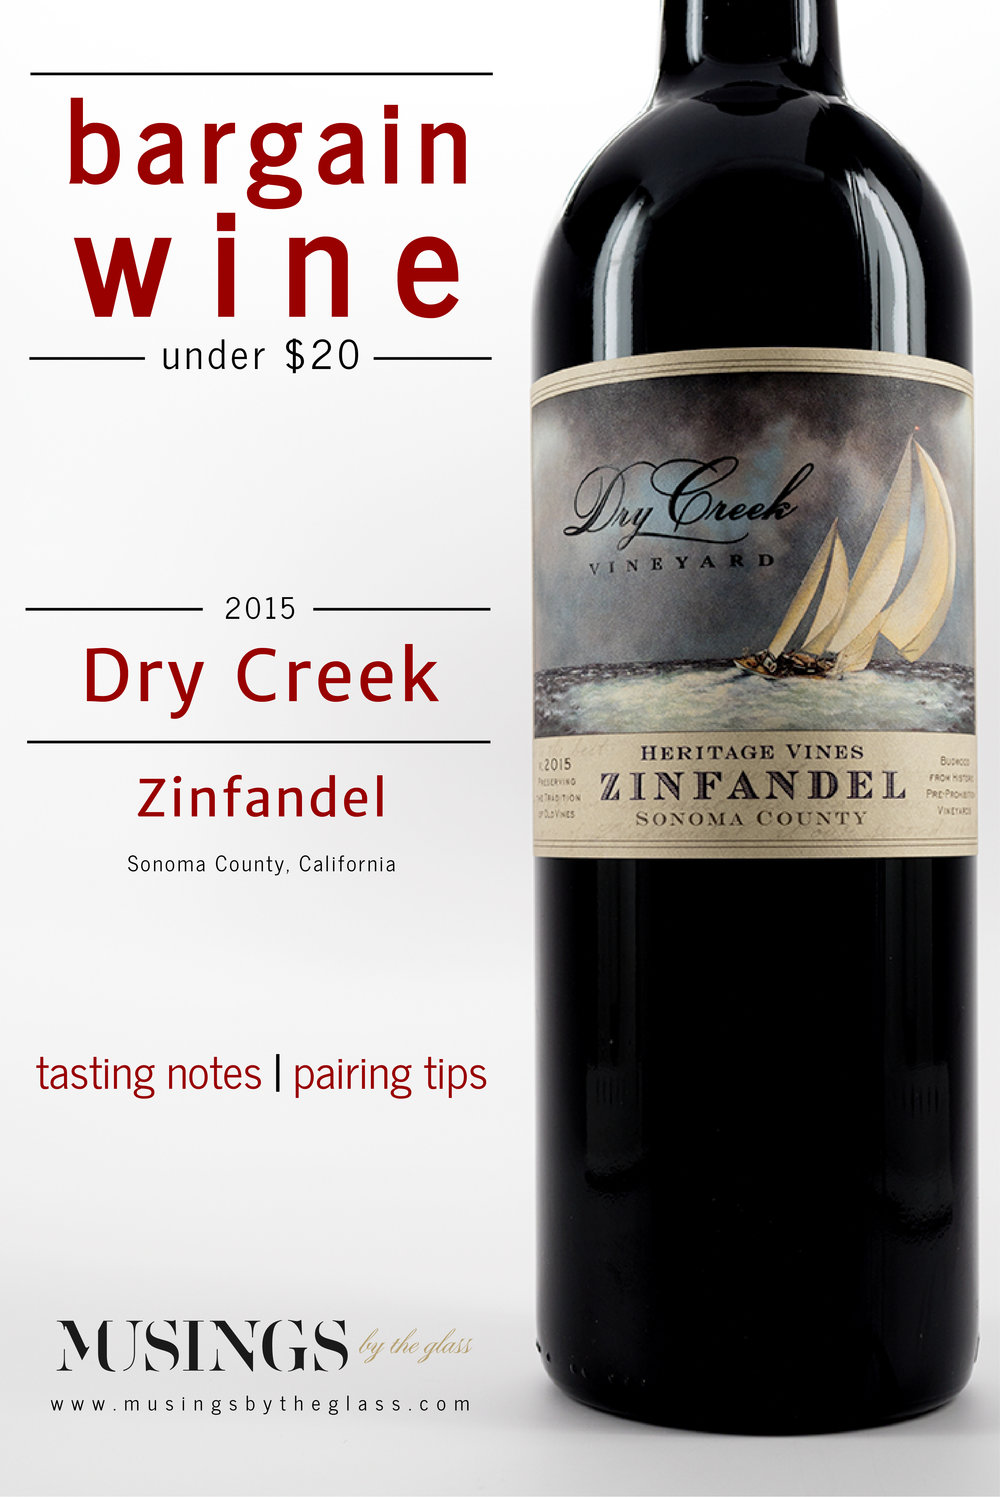 Musings by the Glass - Bargain Wines - Dry Creek Heritage Zinfandel from Sonoma County, California